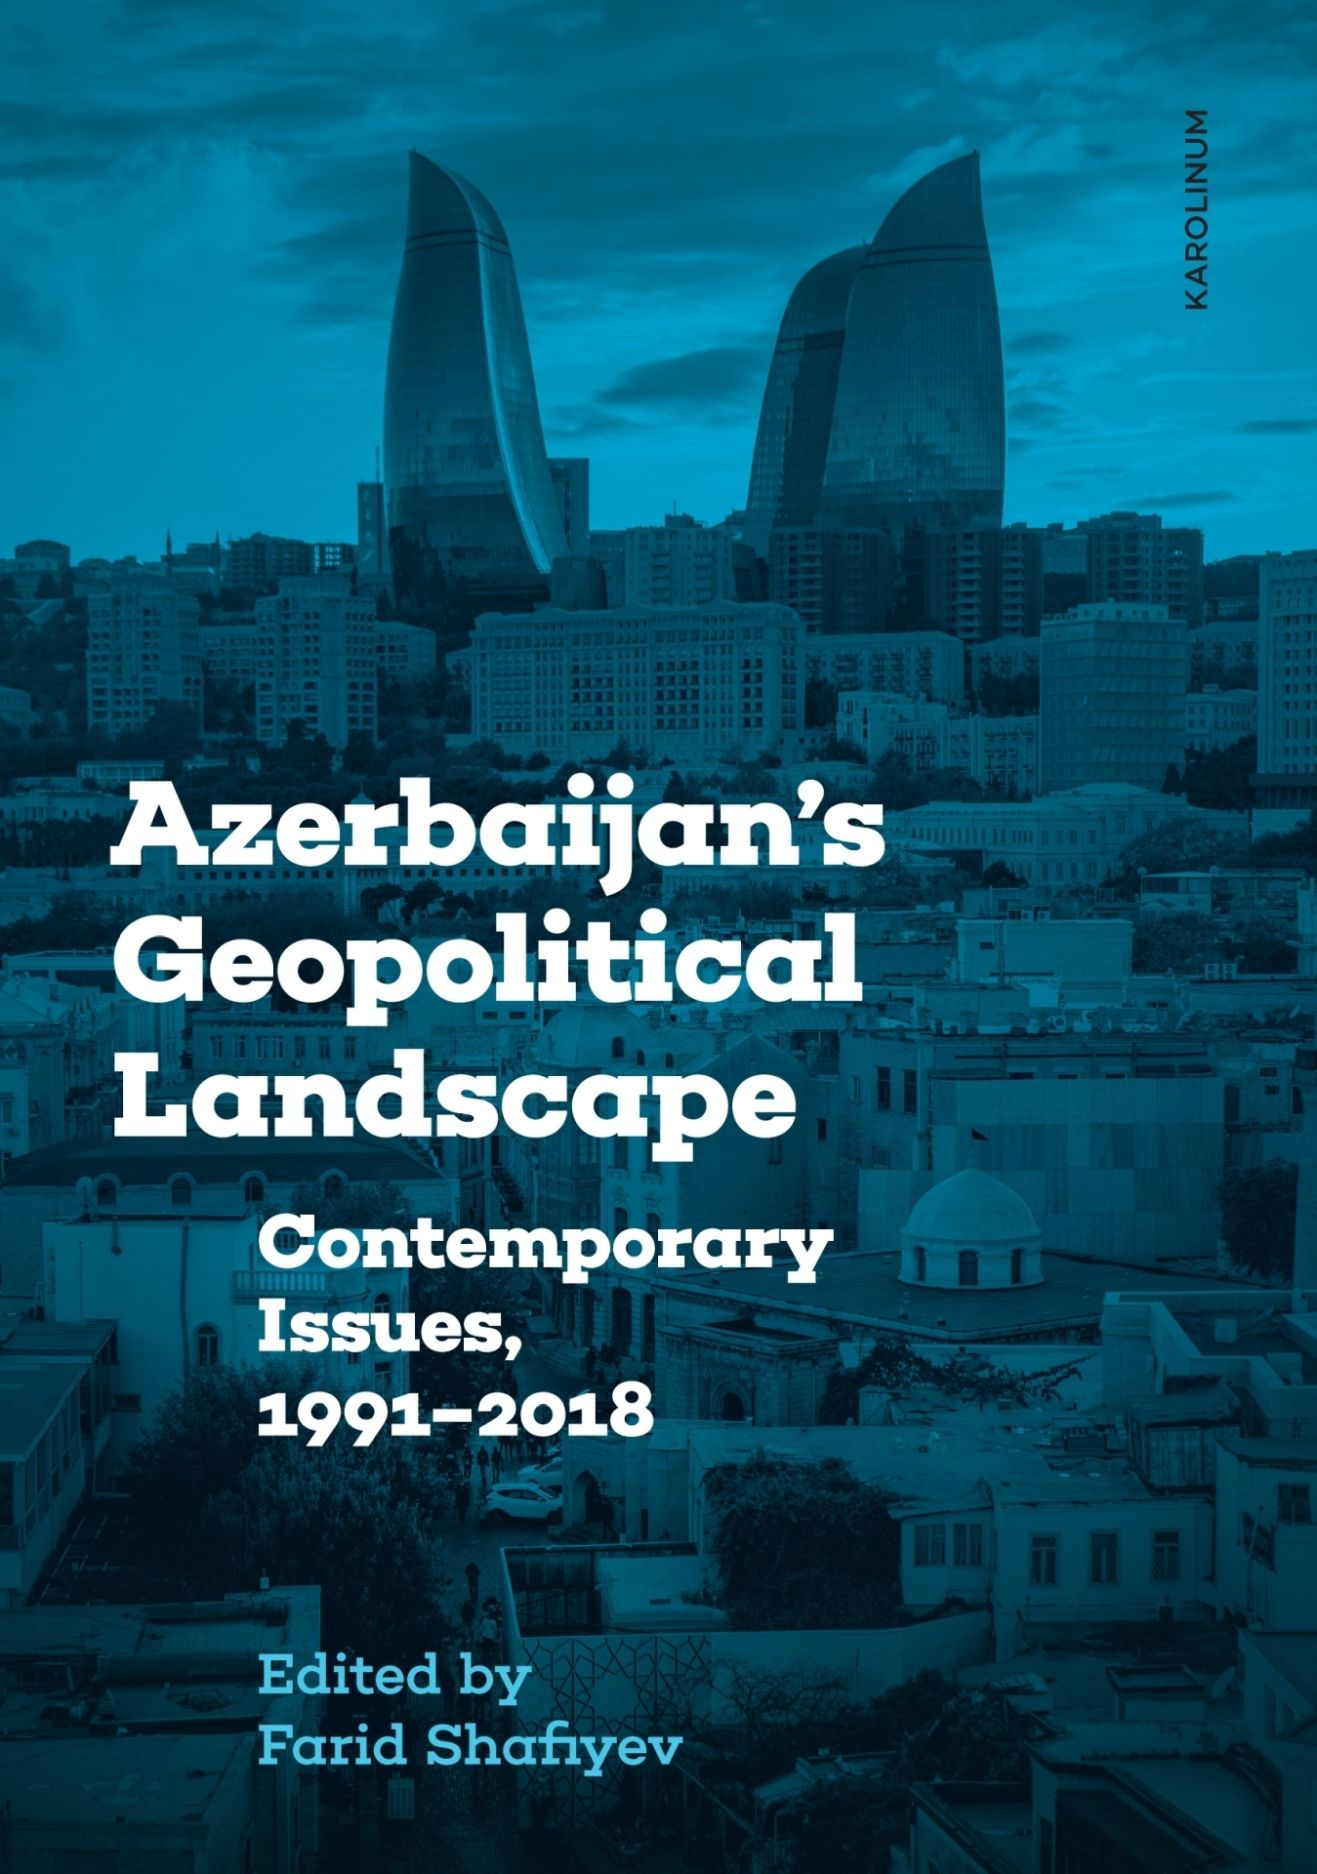 Azerbaijan's Geopolitical Landscape: Contemporary Issues, 1991–2018